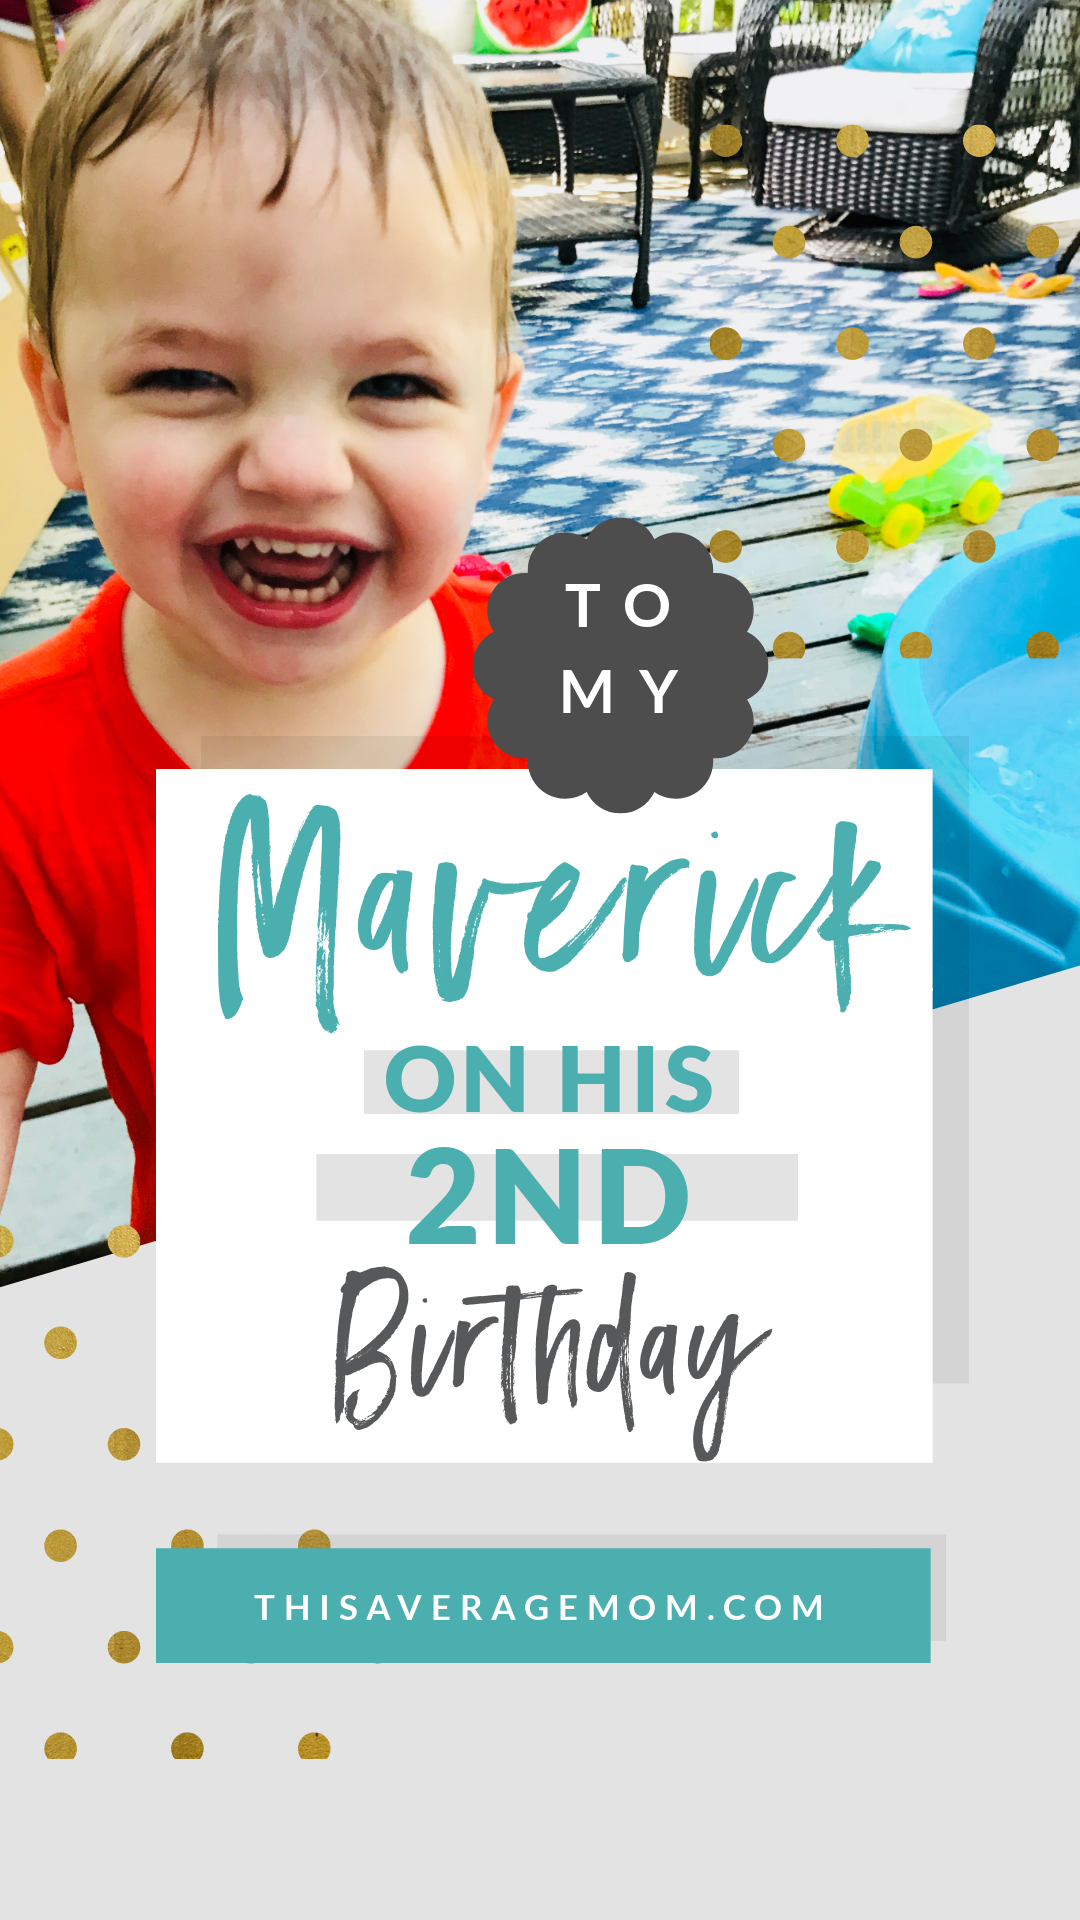 A love note to my baby boy on his 2nd birthday.